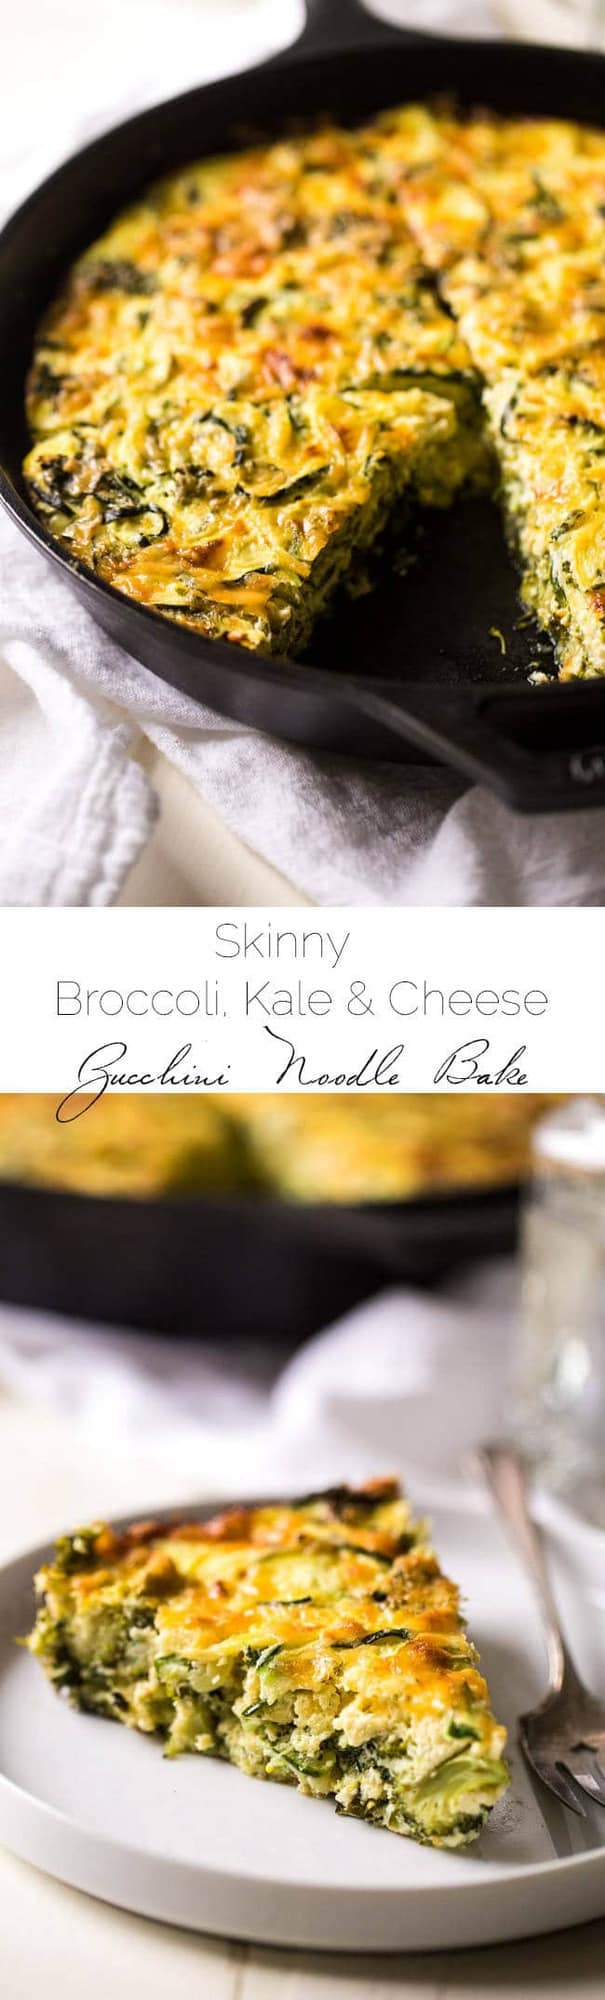 Zucchini Noodle, Kale and Broccoli Cheddar Casserole - 6 Ingredients, grain + gluten free and Vegetarian! Even the kids will love this healthy, veggie-packed dinner! | Foodfaithfitness.com | @FoodFaithFit